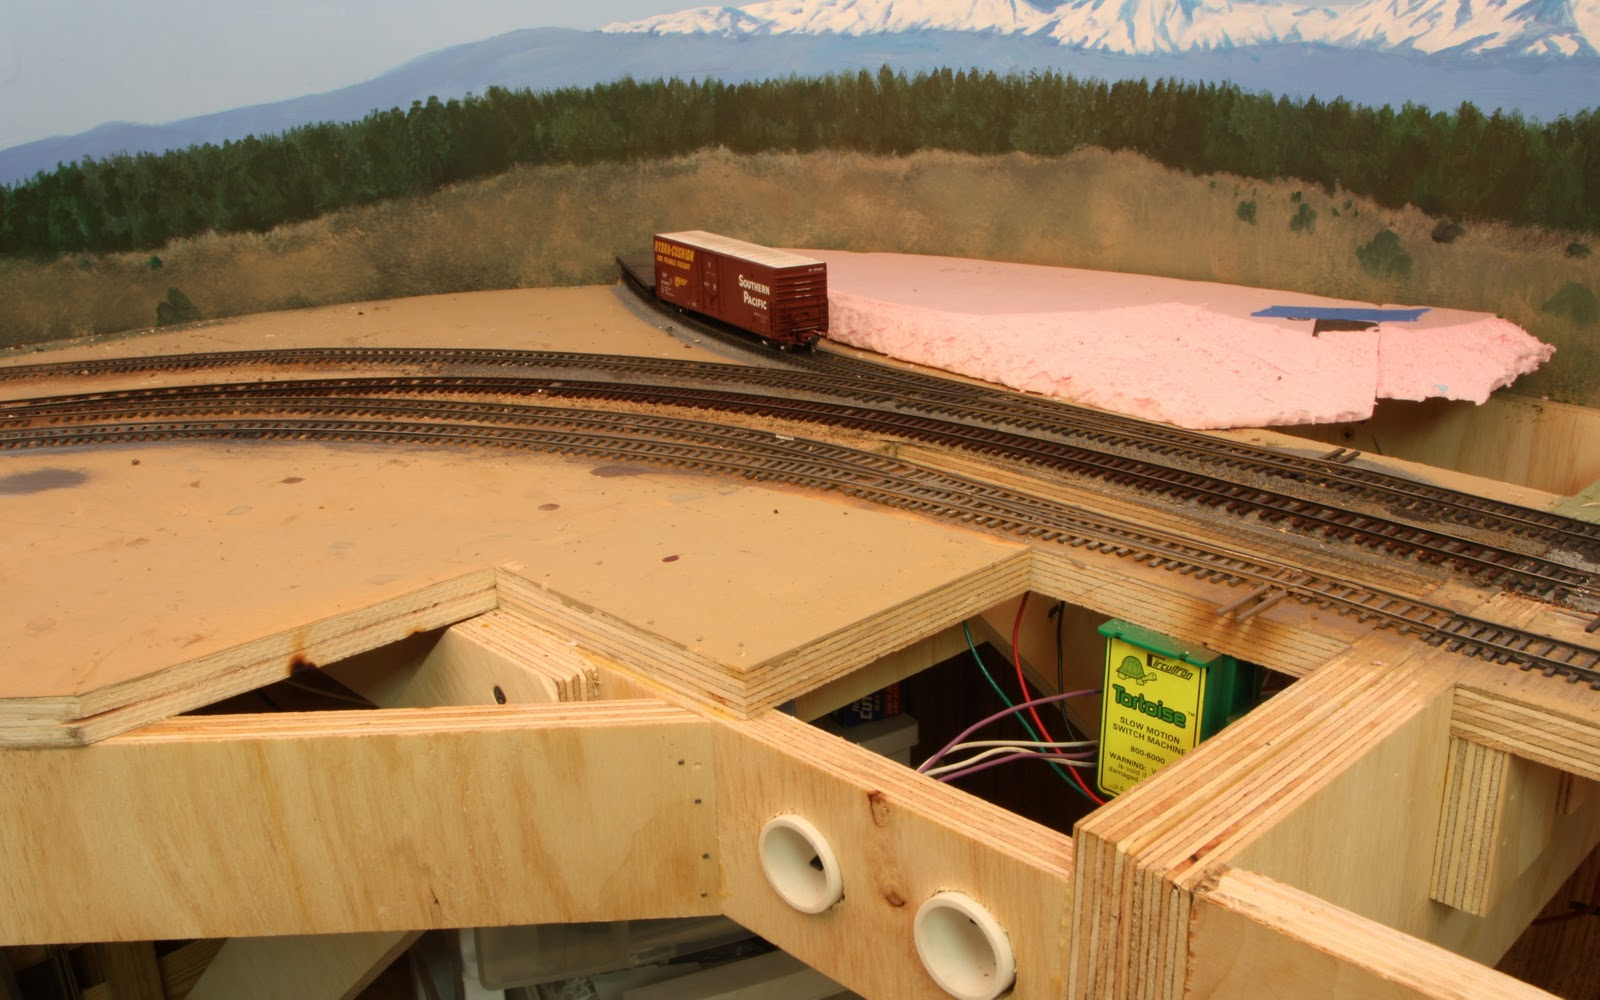 HO Scale Logging Shelf Layouts http://www.the-gauge.net/forum/viewtopic.php?f=46&t=3090&start=60